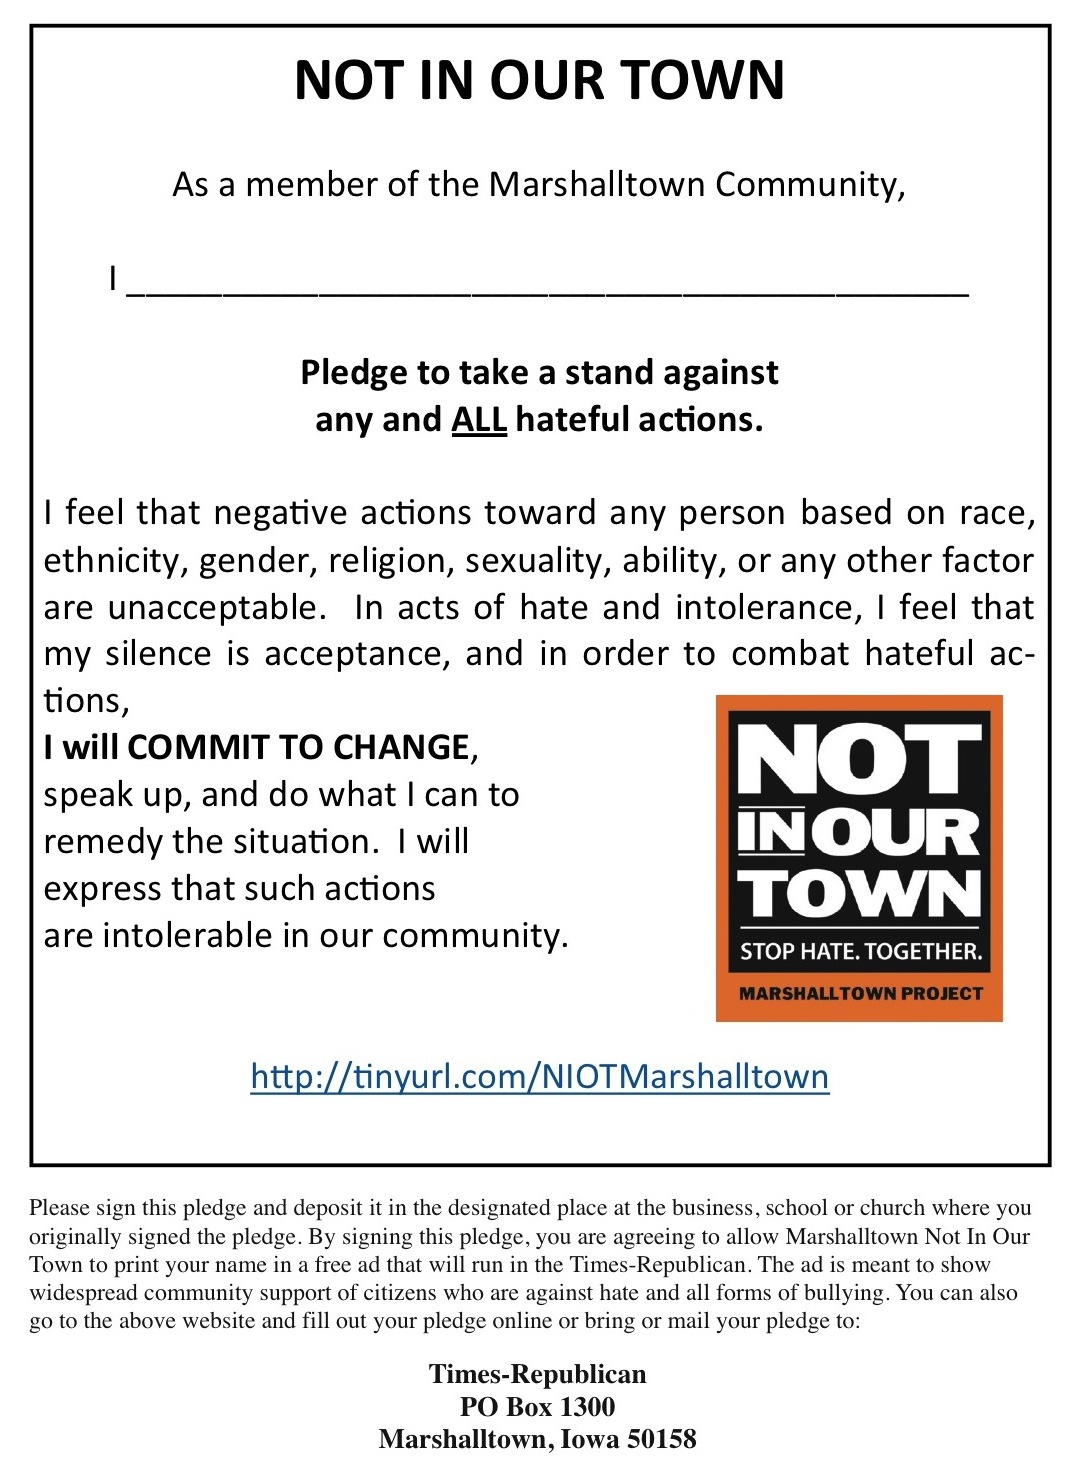 Sample Pledges : Not in Our Town